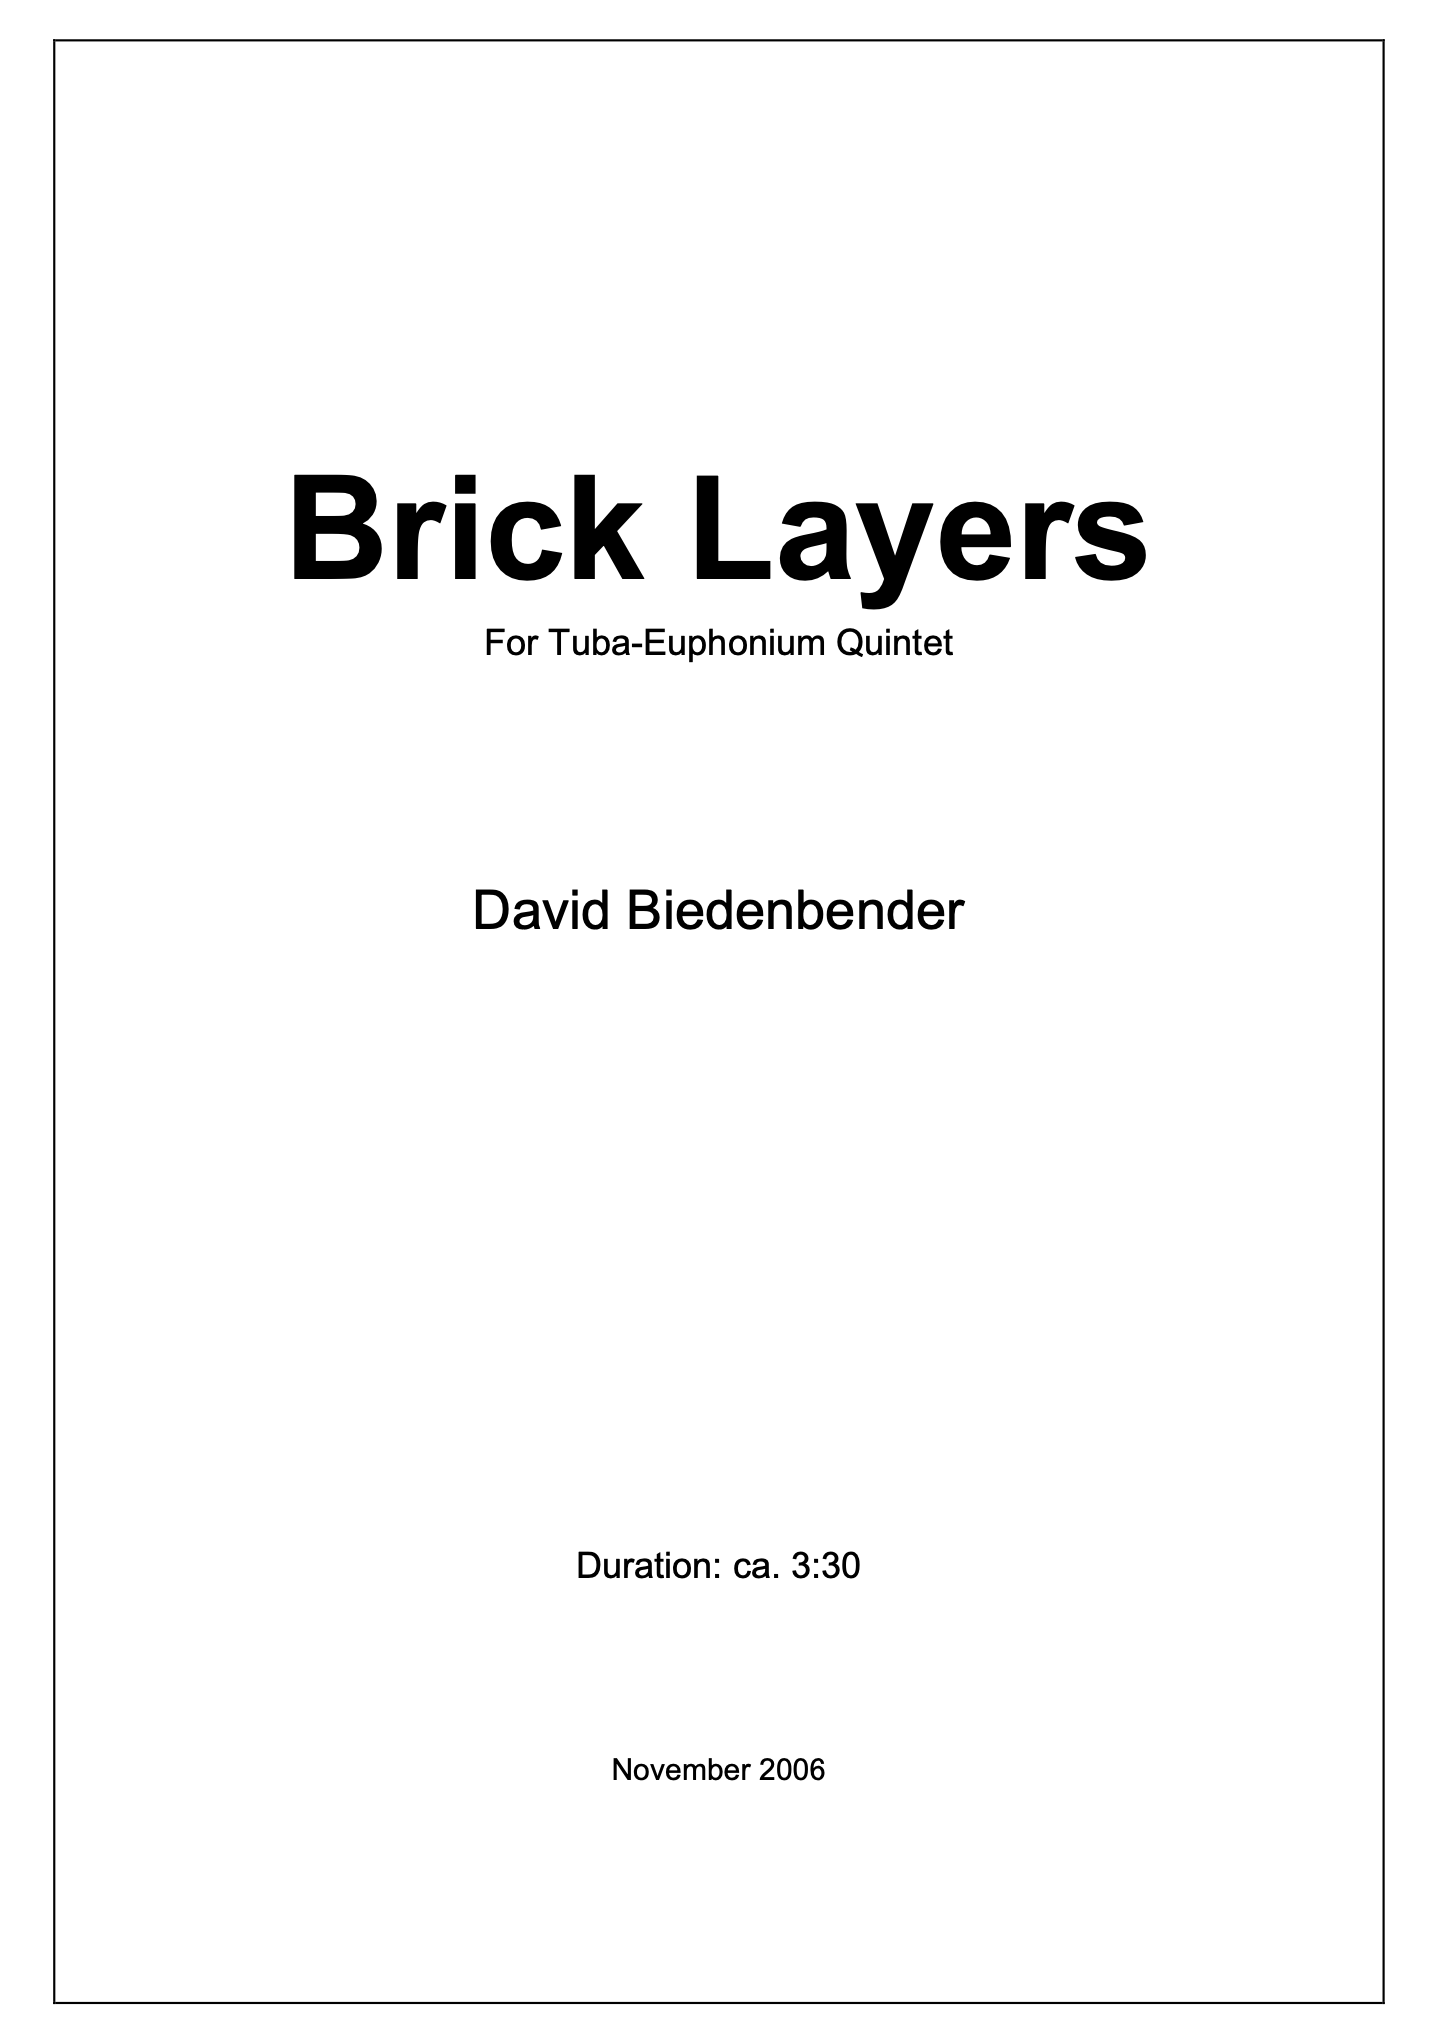 Brick Layers by David Biedenbender